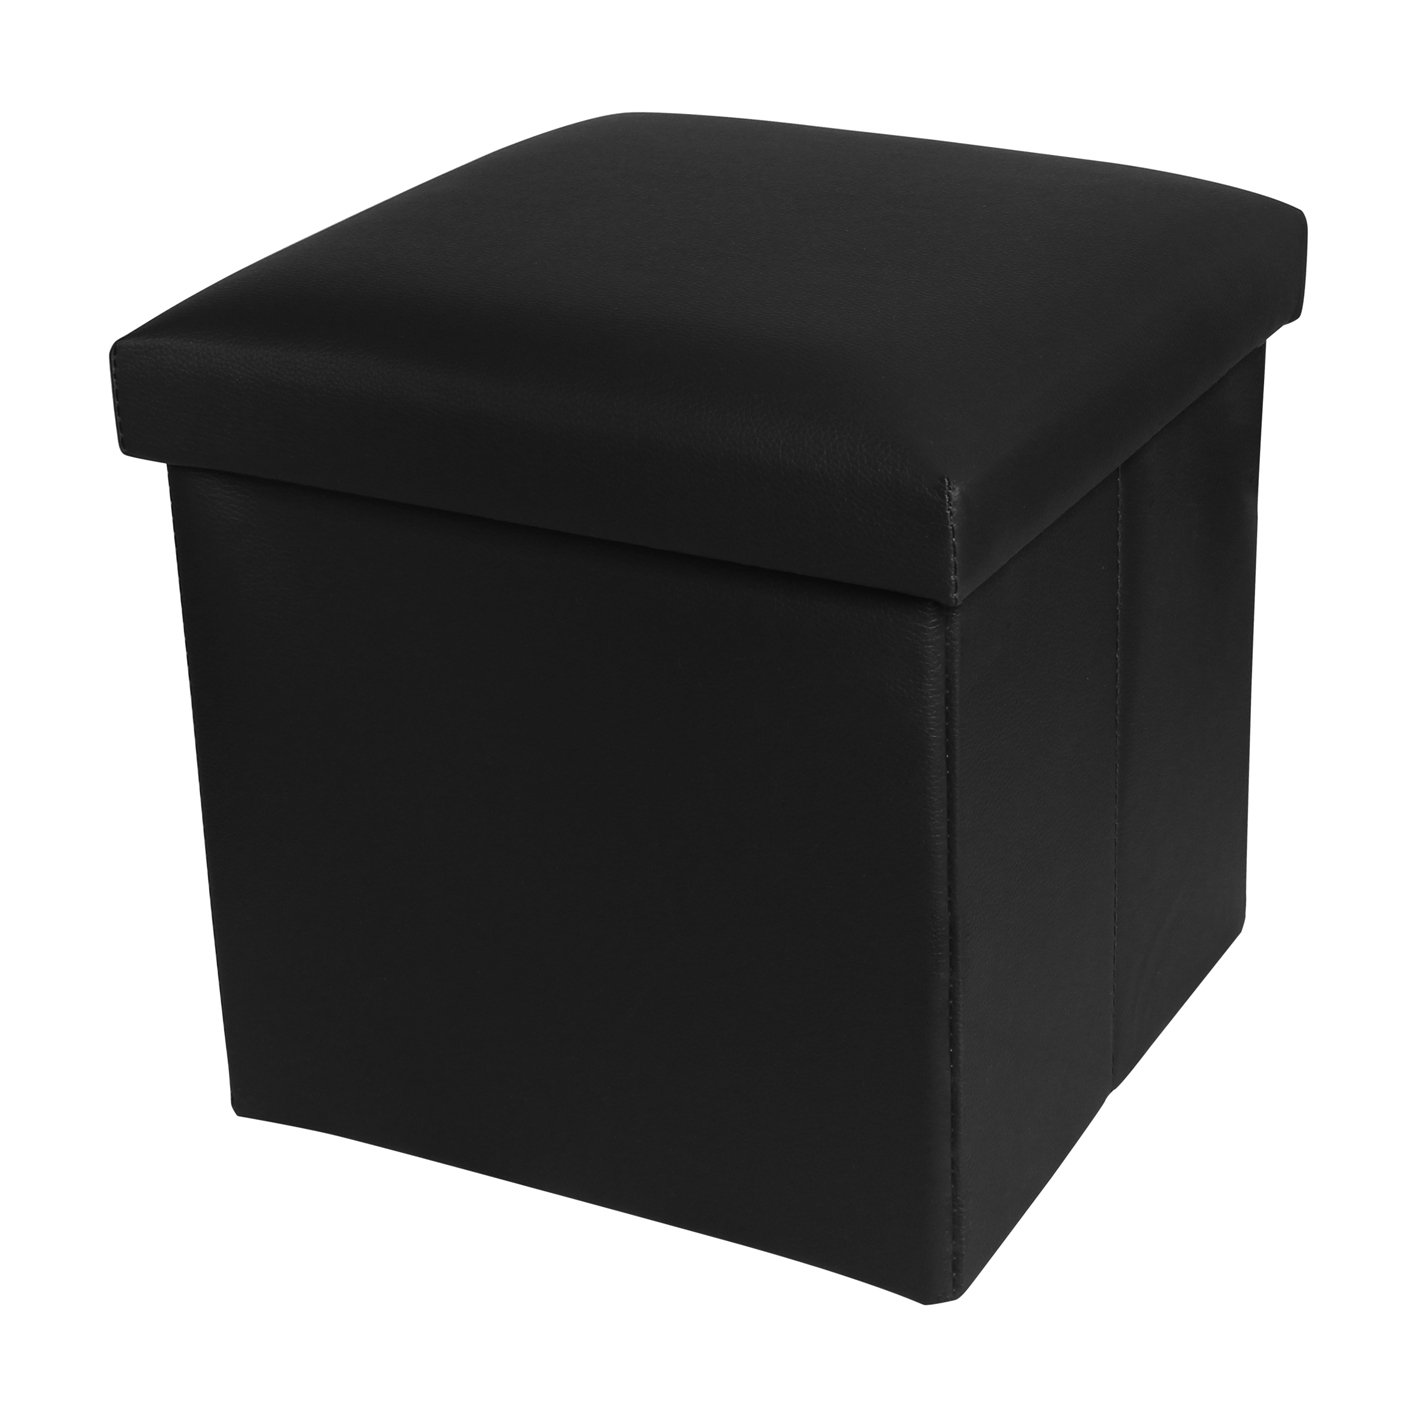 NISUNS OT01 Leather Folding Storage Ottoman Cube Footrest Seat, 12 X 12 X 12 Inches (Black) by NISUNS